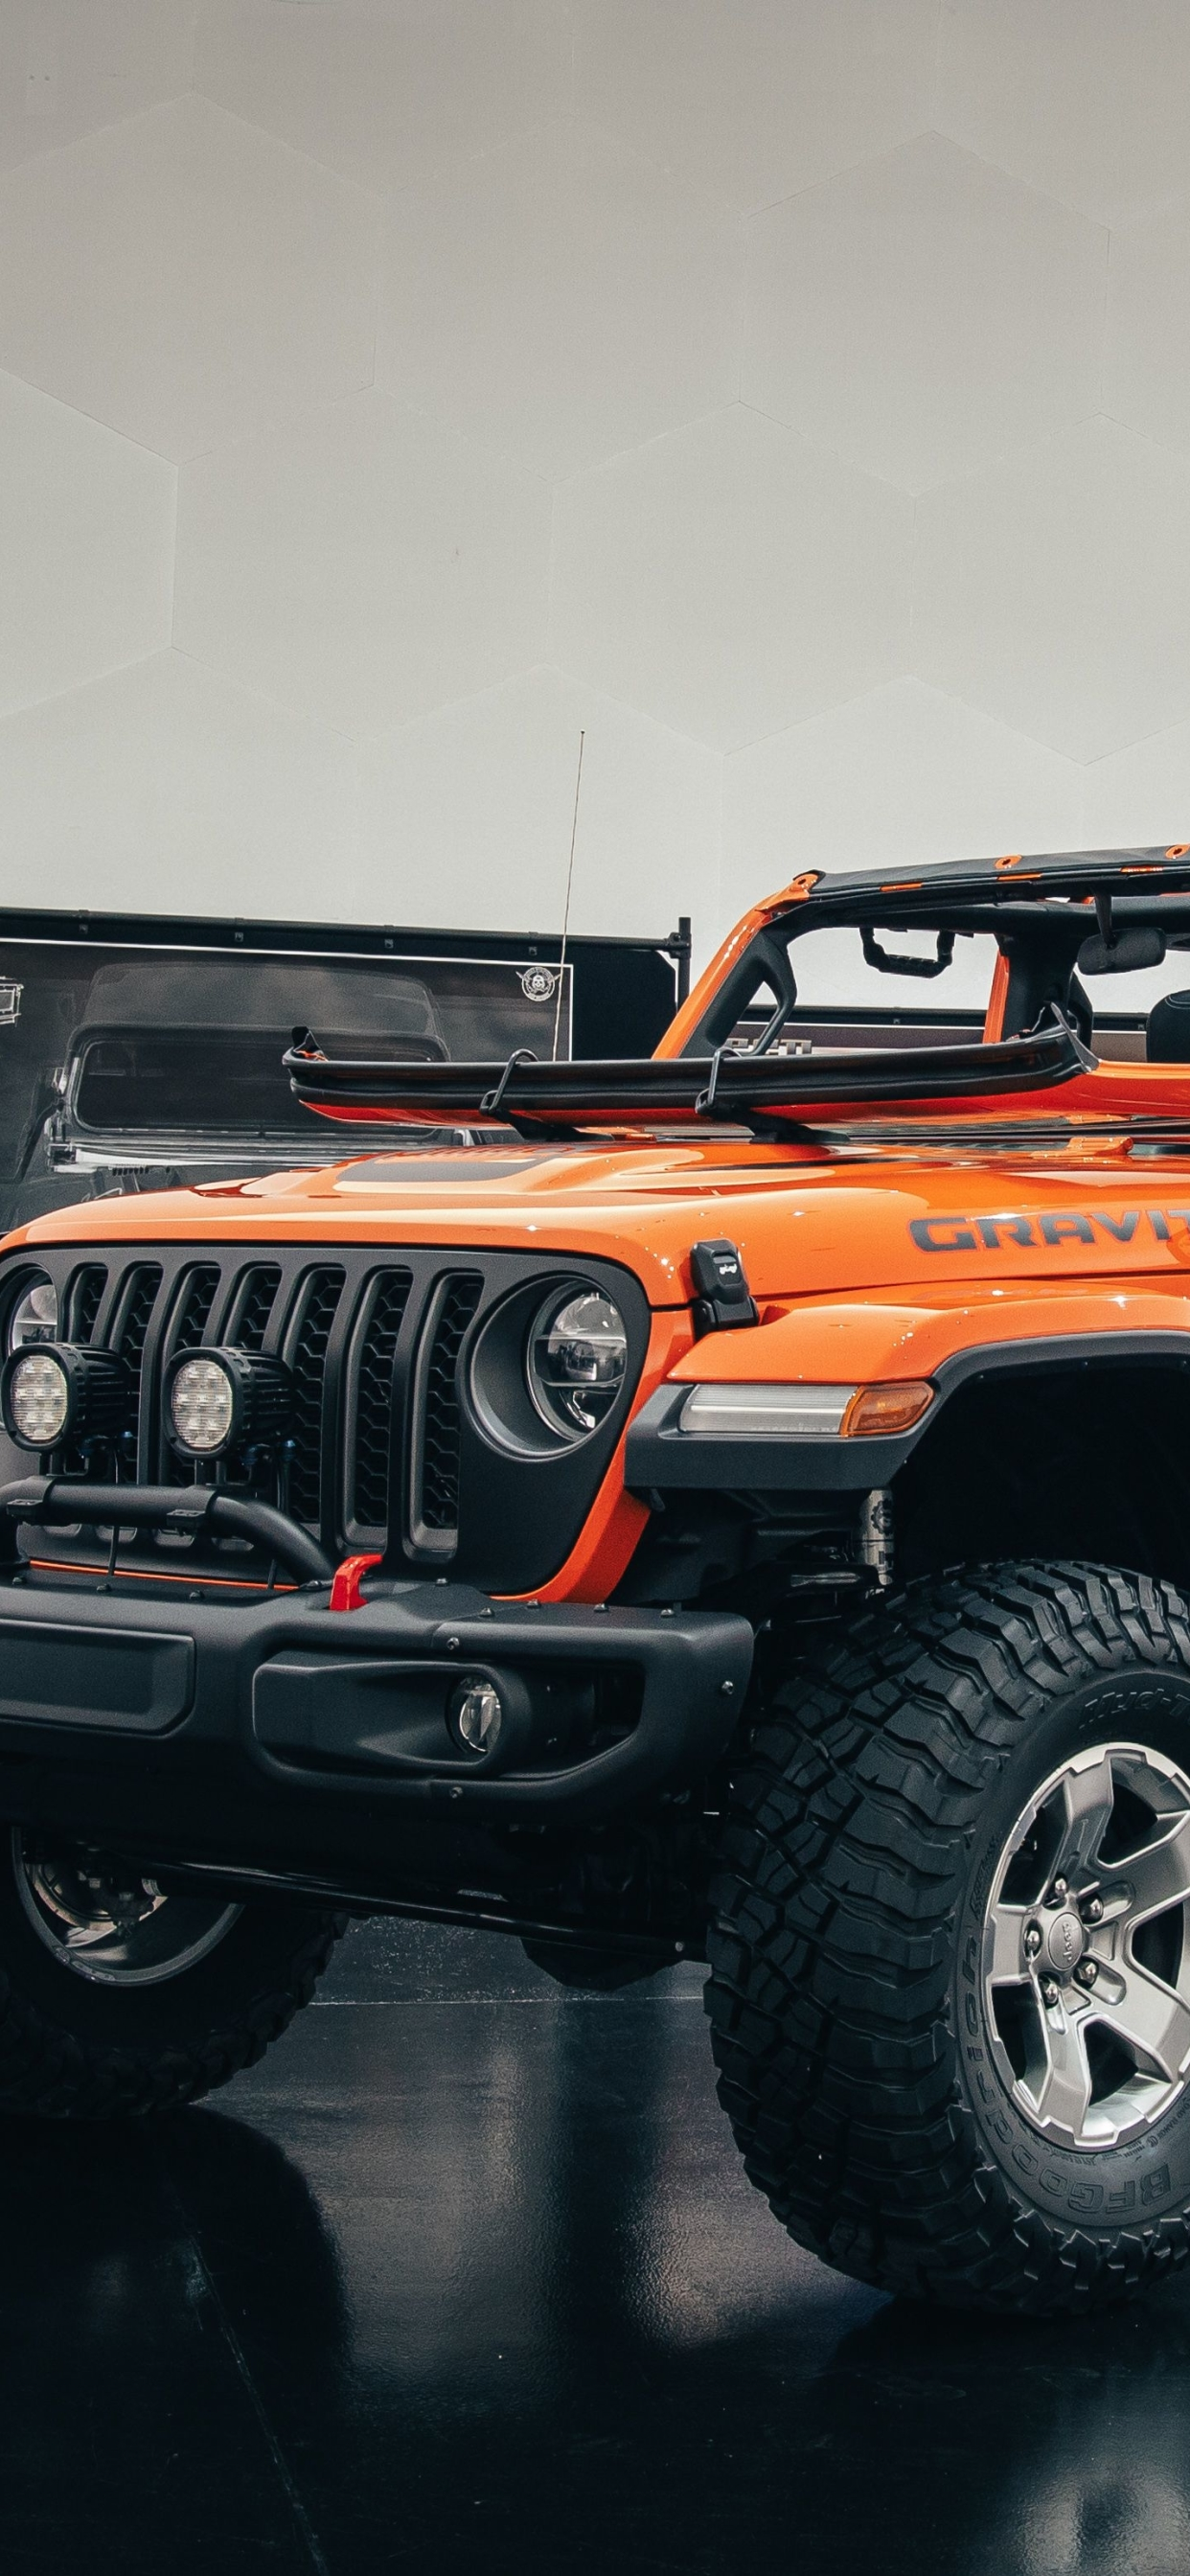 1242x2688 Jeep Gladiator Gravity Iphone Xs Max Wallpaper Hd